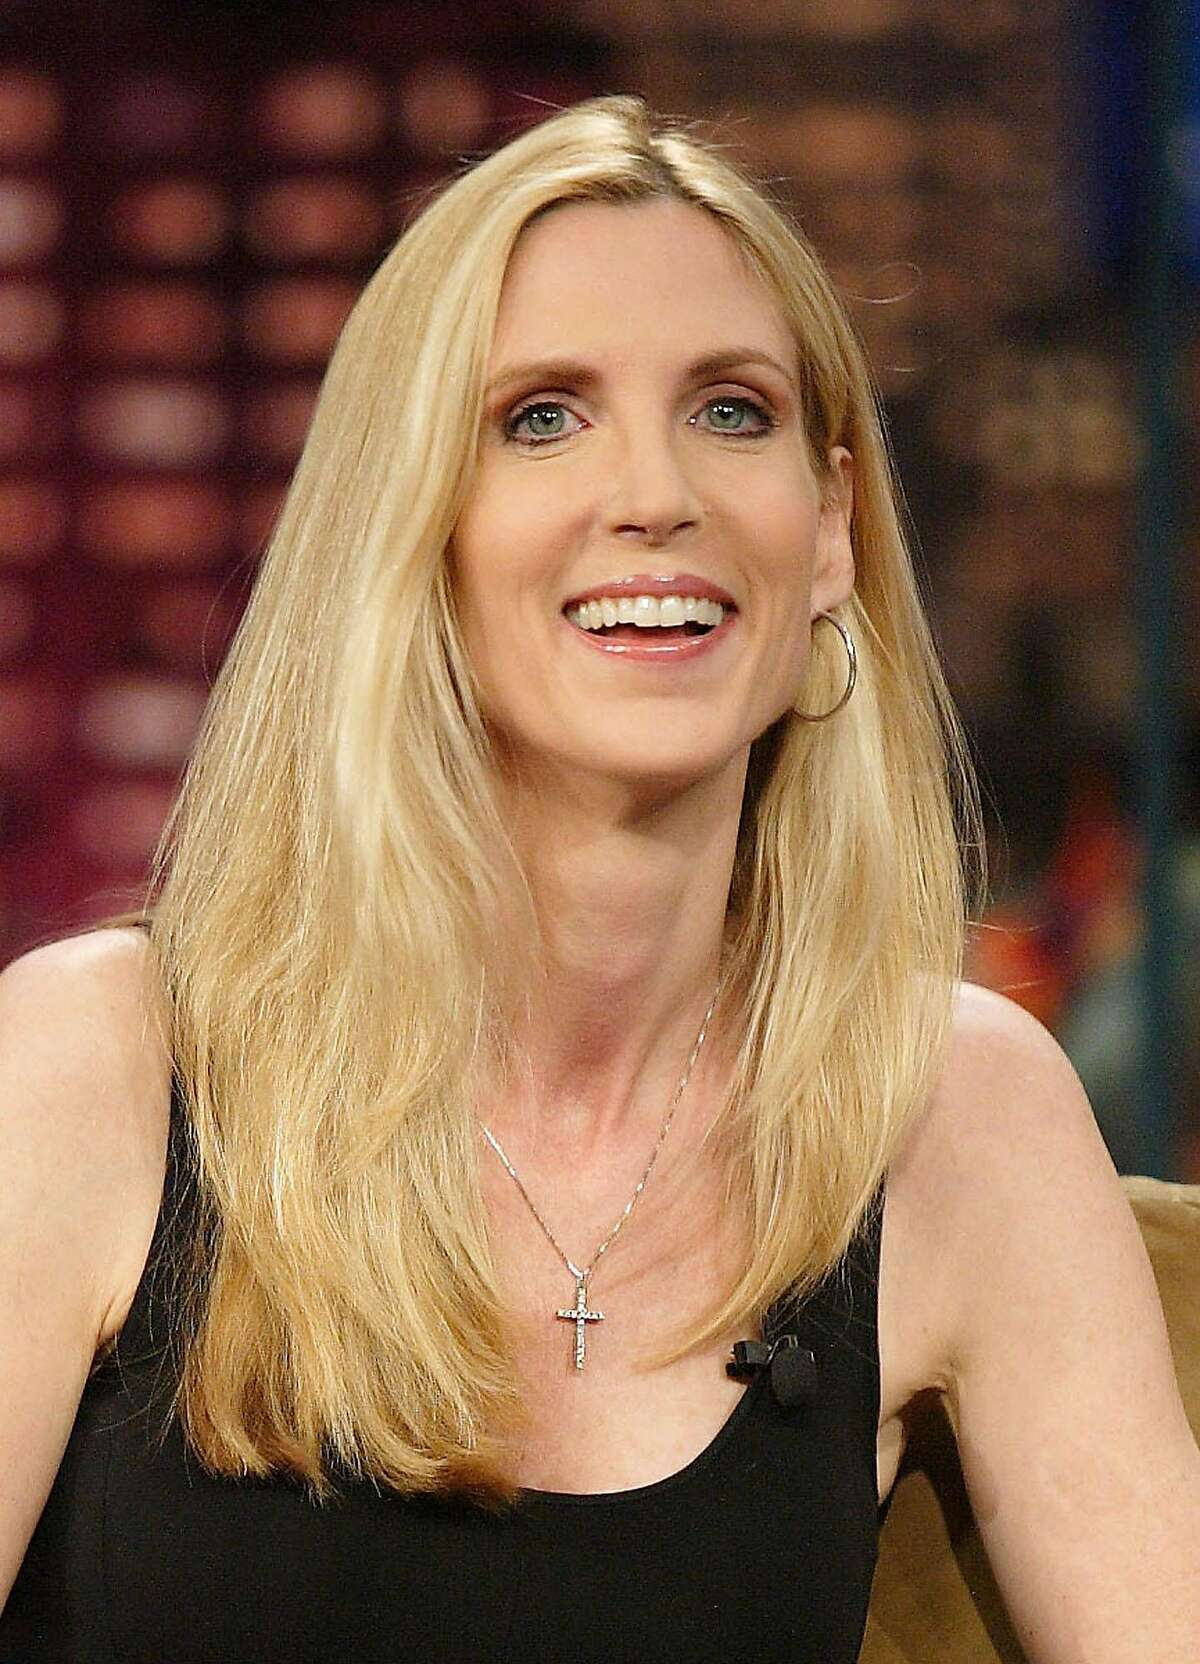 UC Berkeley asked Ann Coulter to speak on the Cal campus May 2 instead of next Thursday, as was planned.